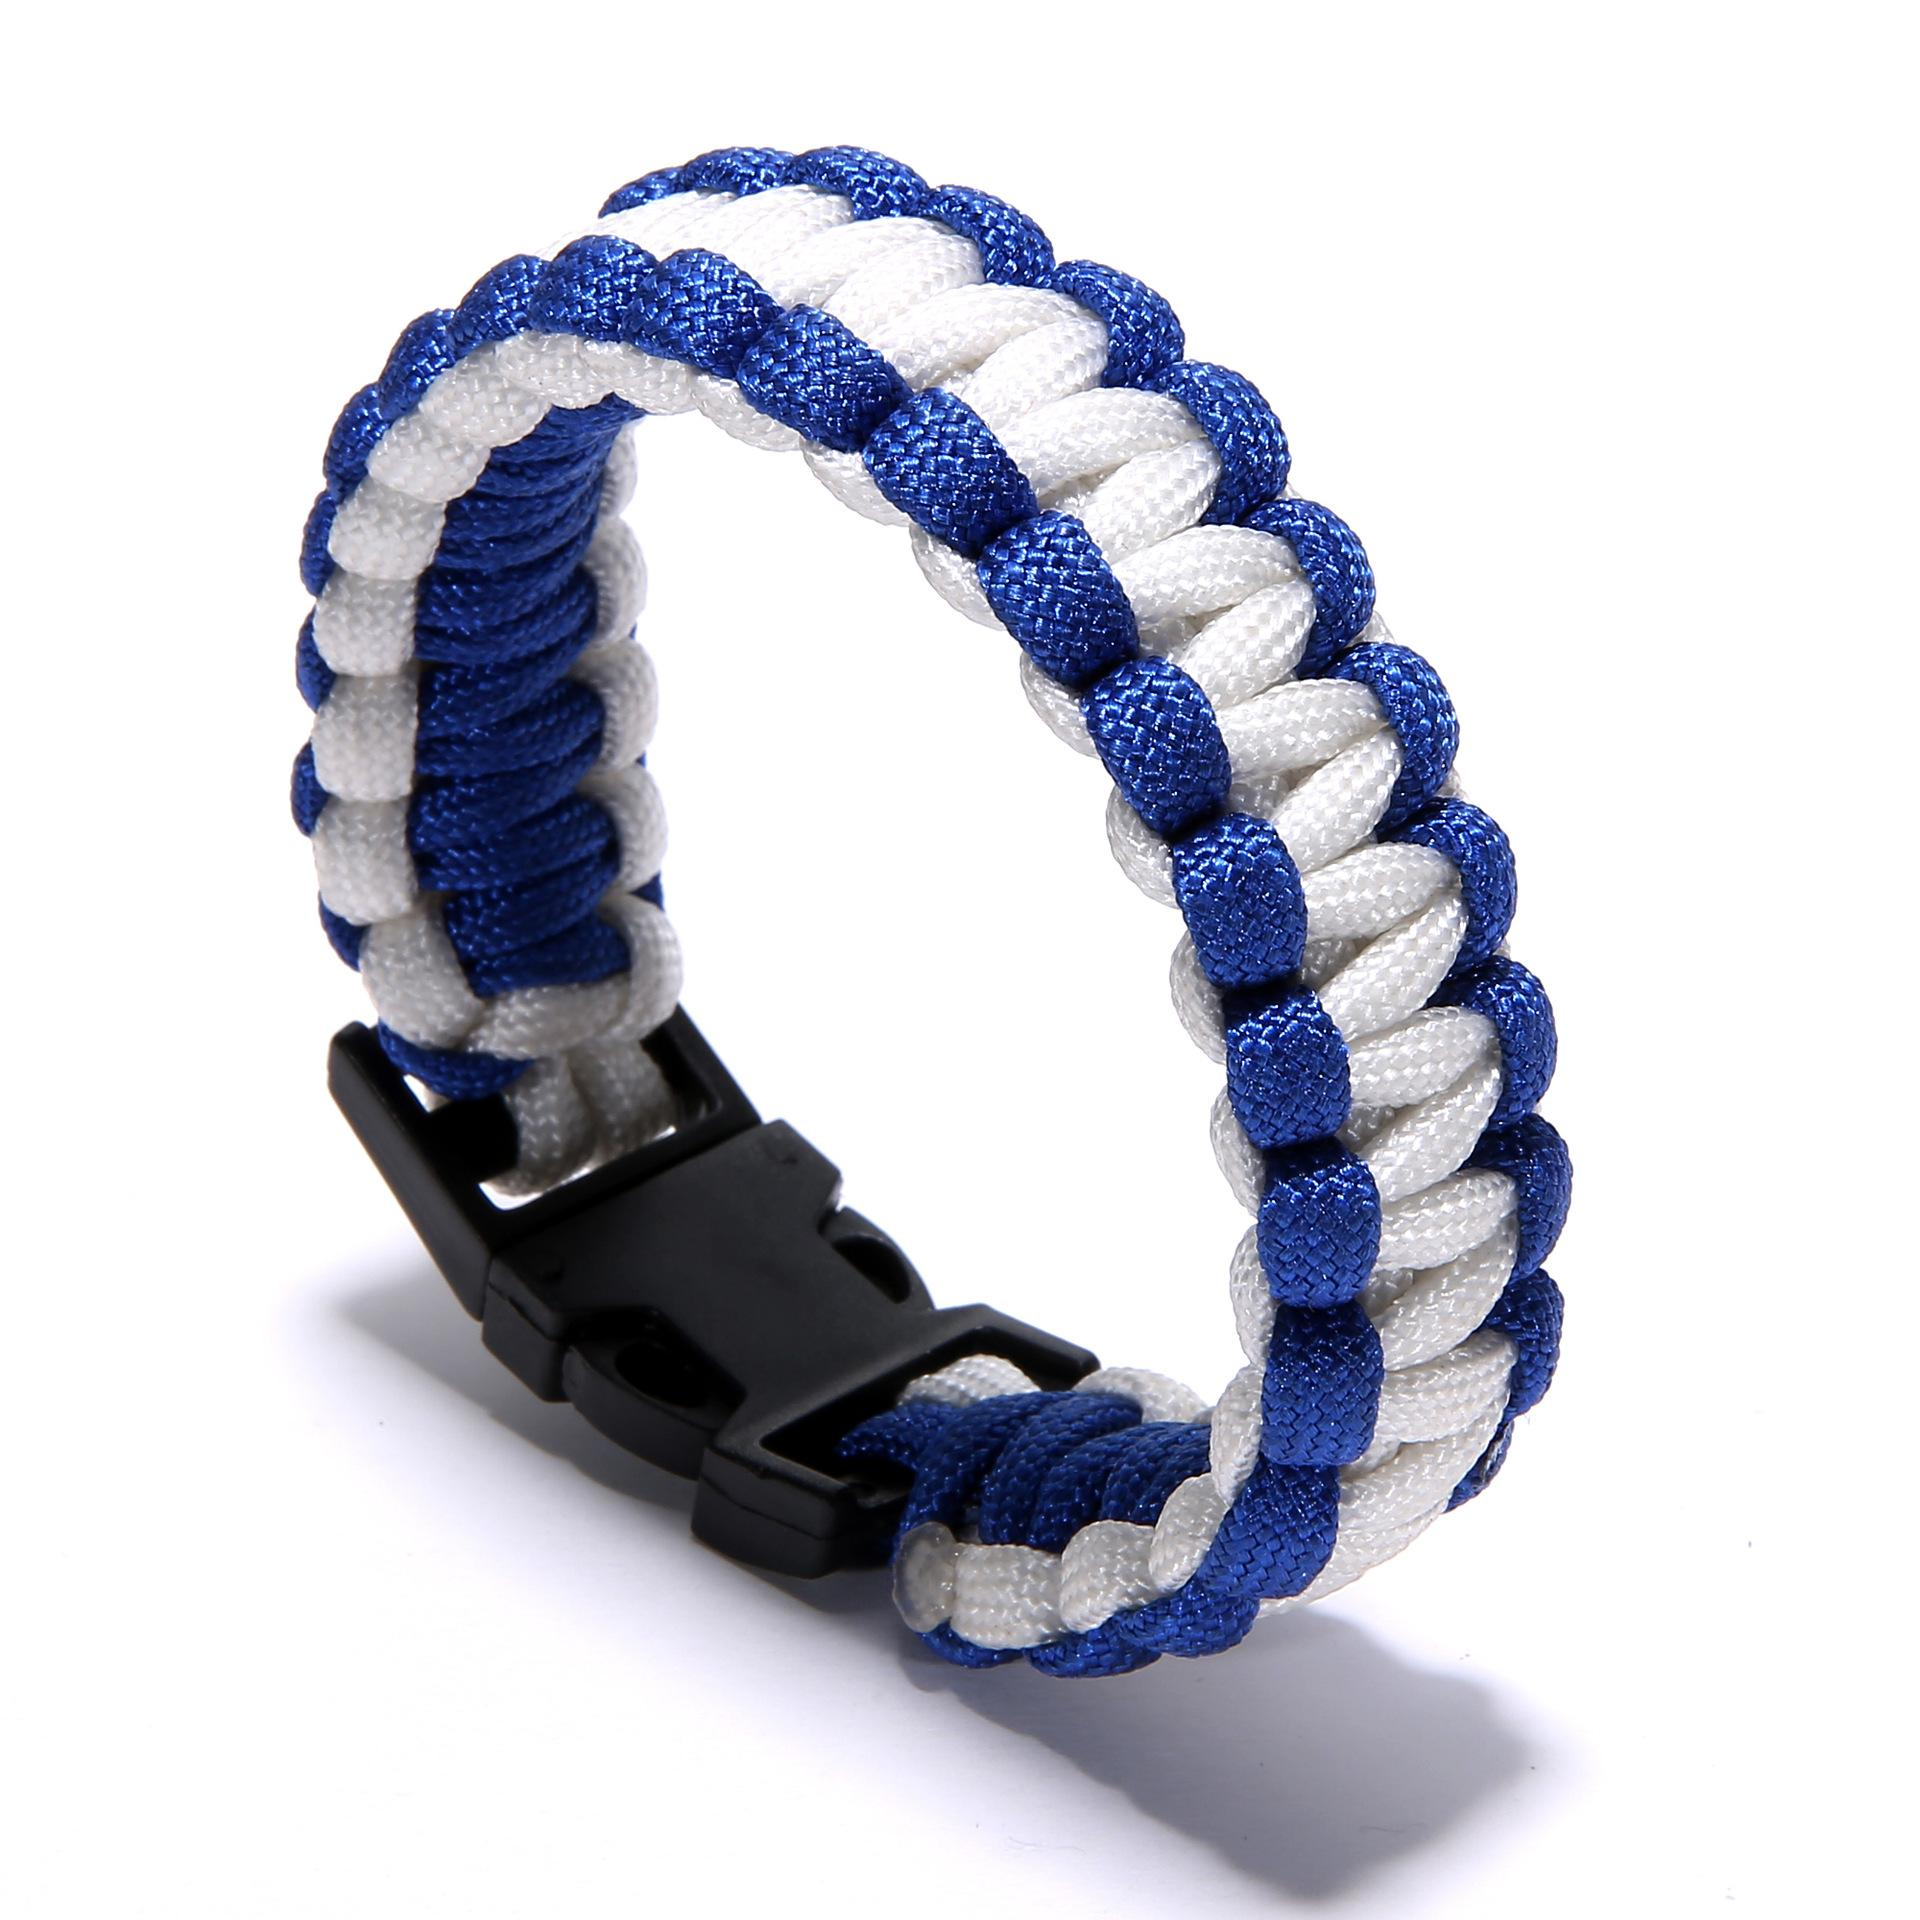 Factory Price Survival Self-rescue Parachute Cord Paracord Bracelet Outdoor  Camping Emergency Survival Escape Rope Buckle Travel Kit Tools